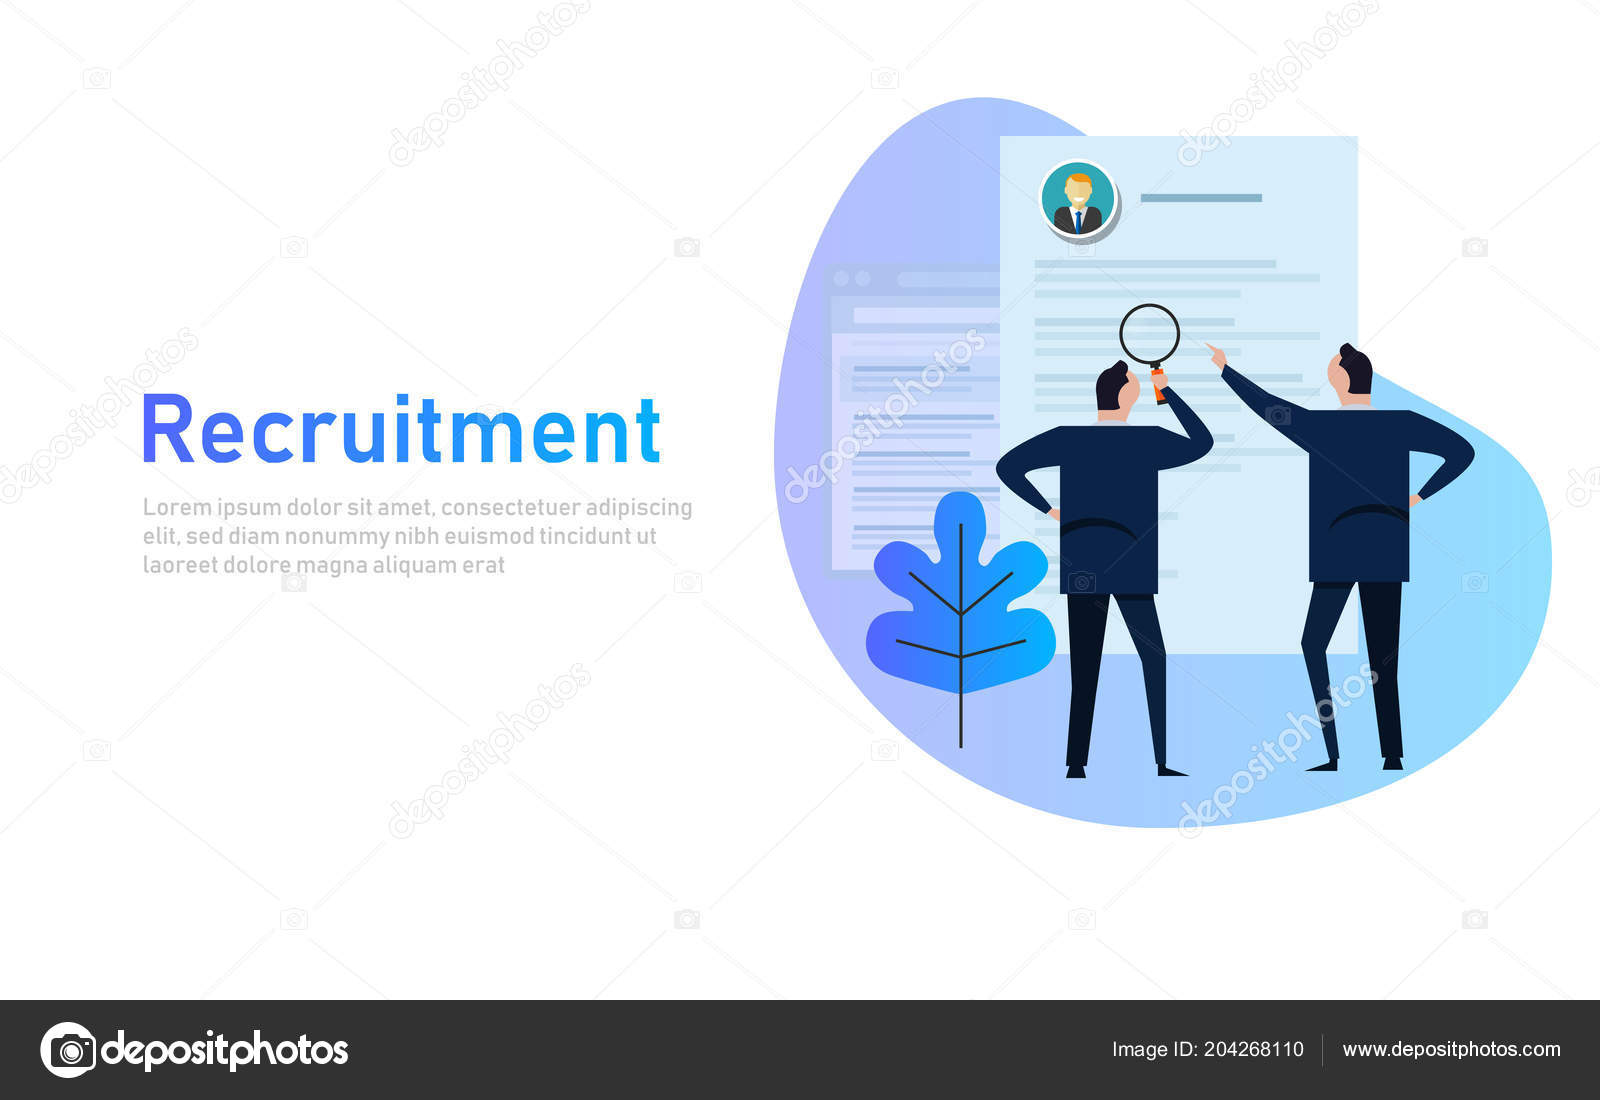 Recruitment process  selecting candidate by human resource  Business